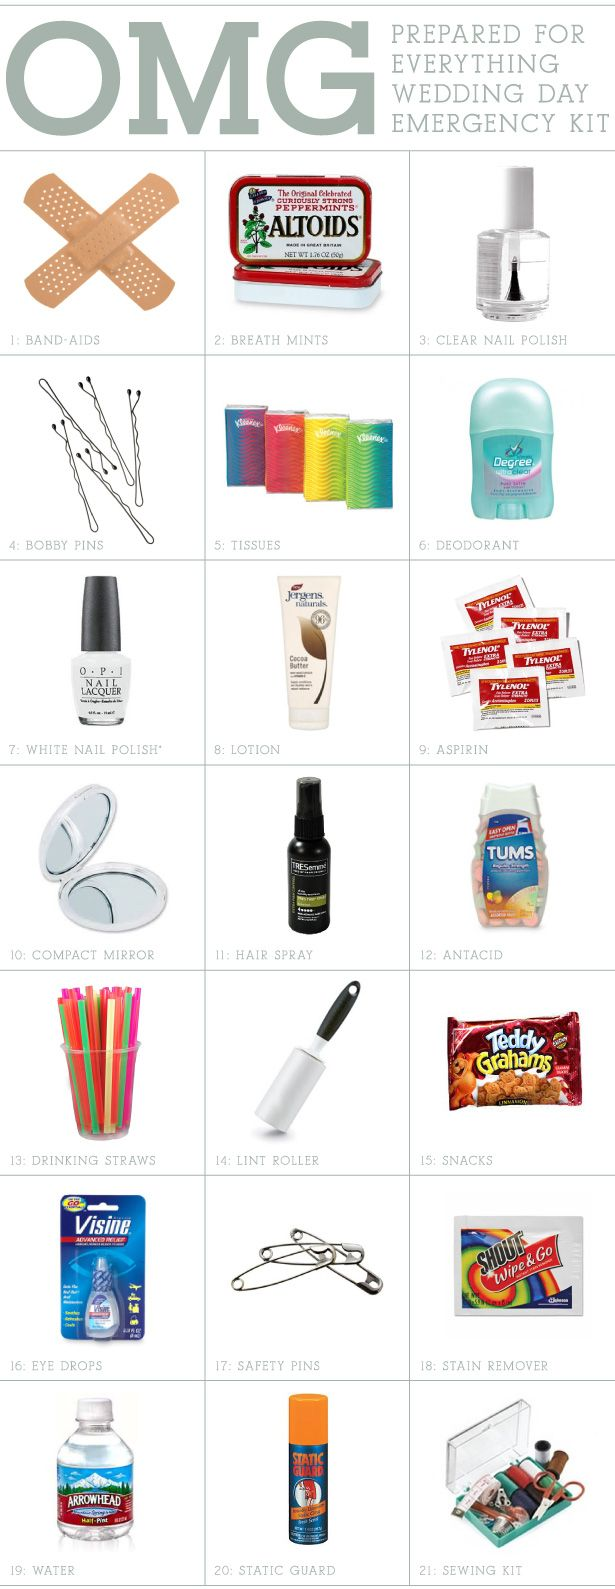 Wedding Emergency Kit: bridal shower gift idea